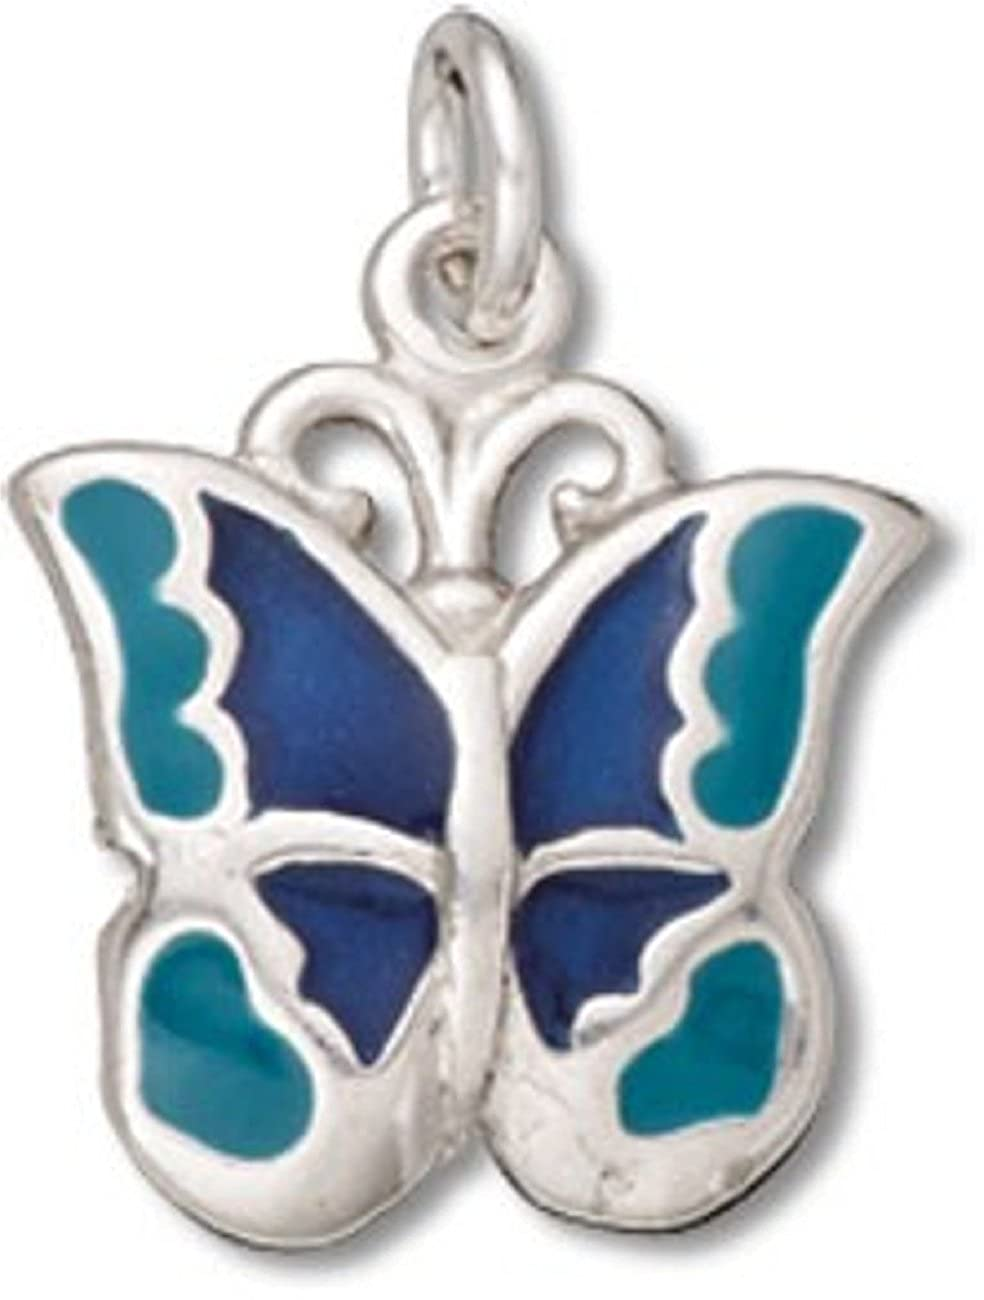 Sterling Silver 7 4.5mm Charm Bracelet With Attached Small Enameled Navy Blue And Teal Butterfly Charm